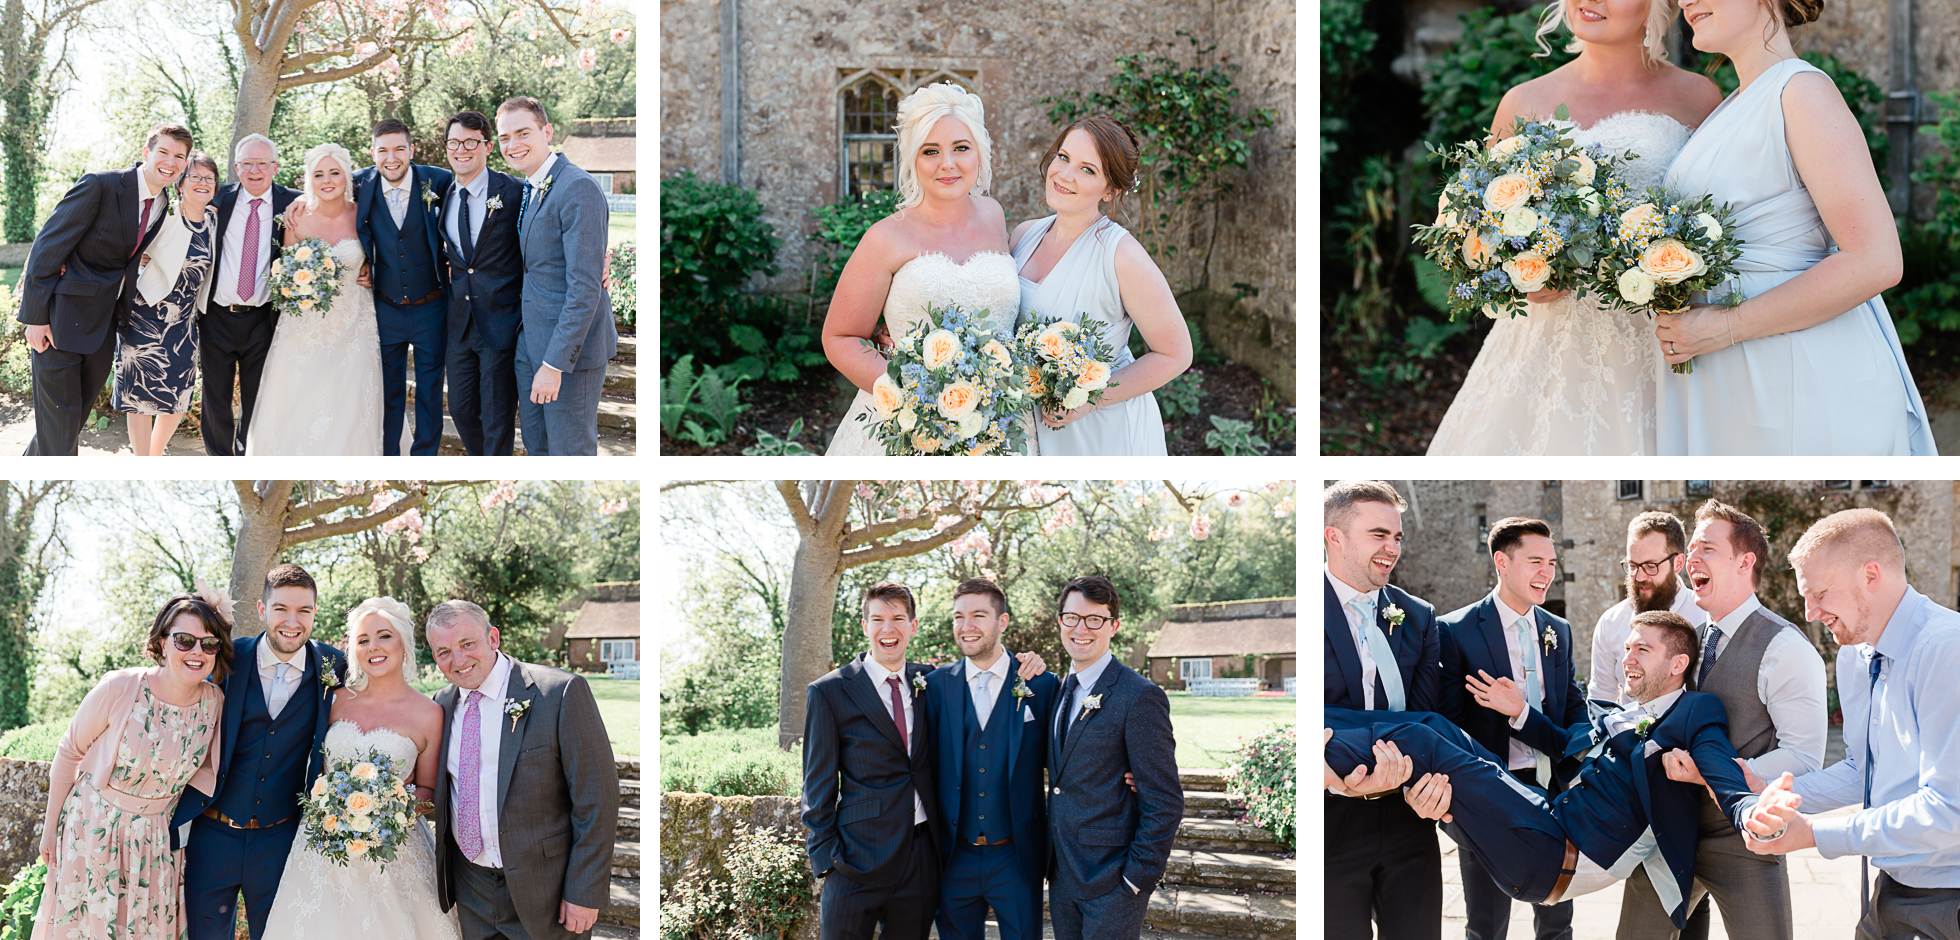 Wedding Photography at Lympne Castle